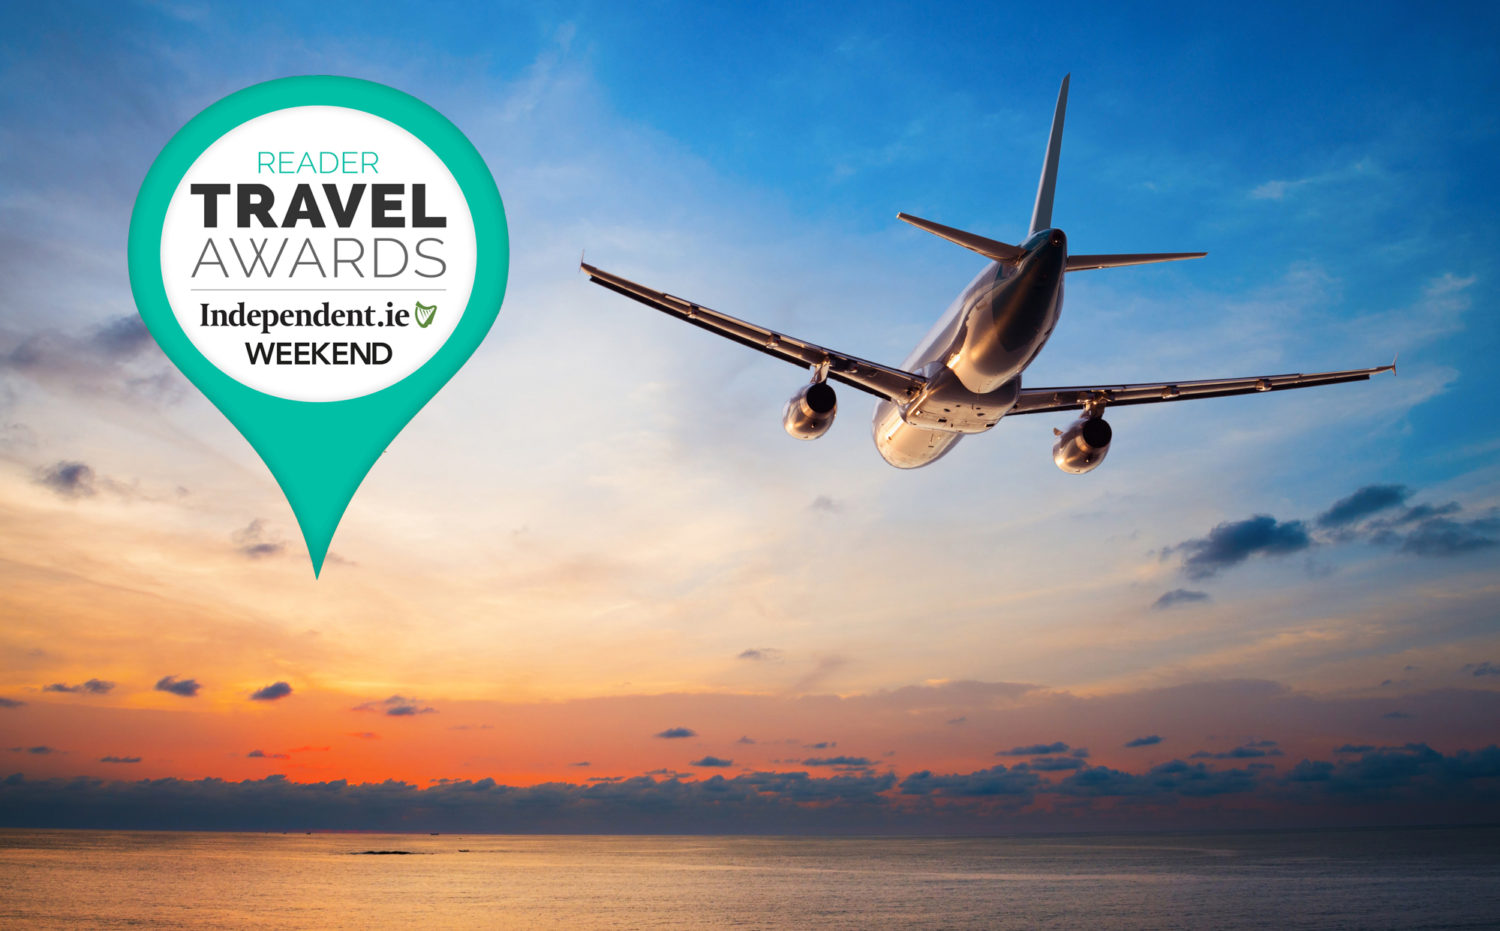 Reader Travel Awards